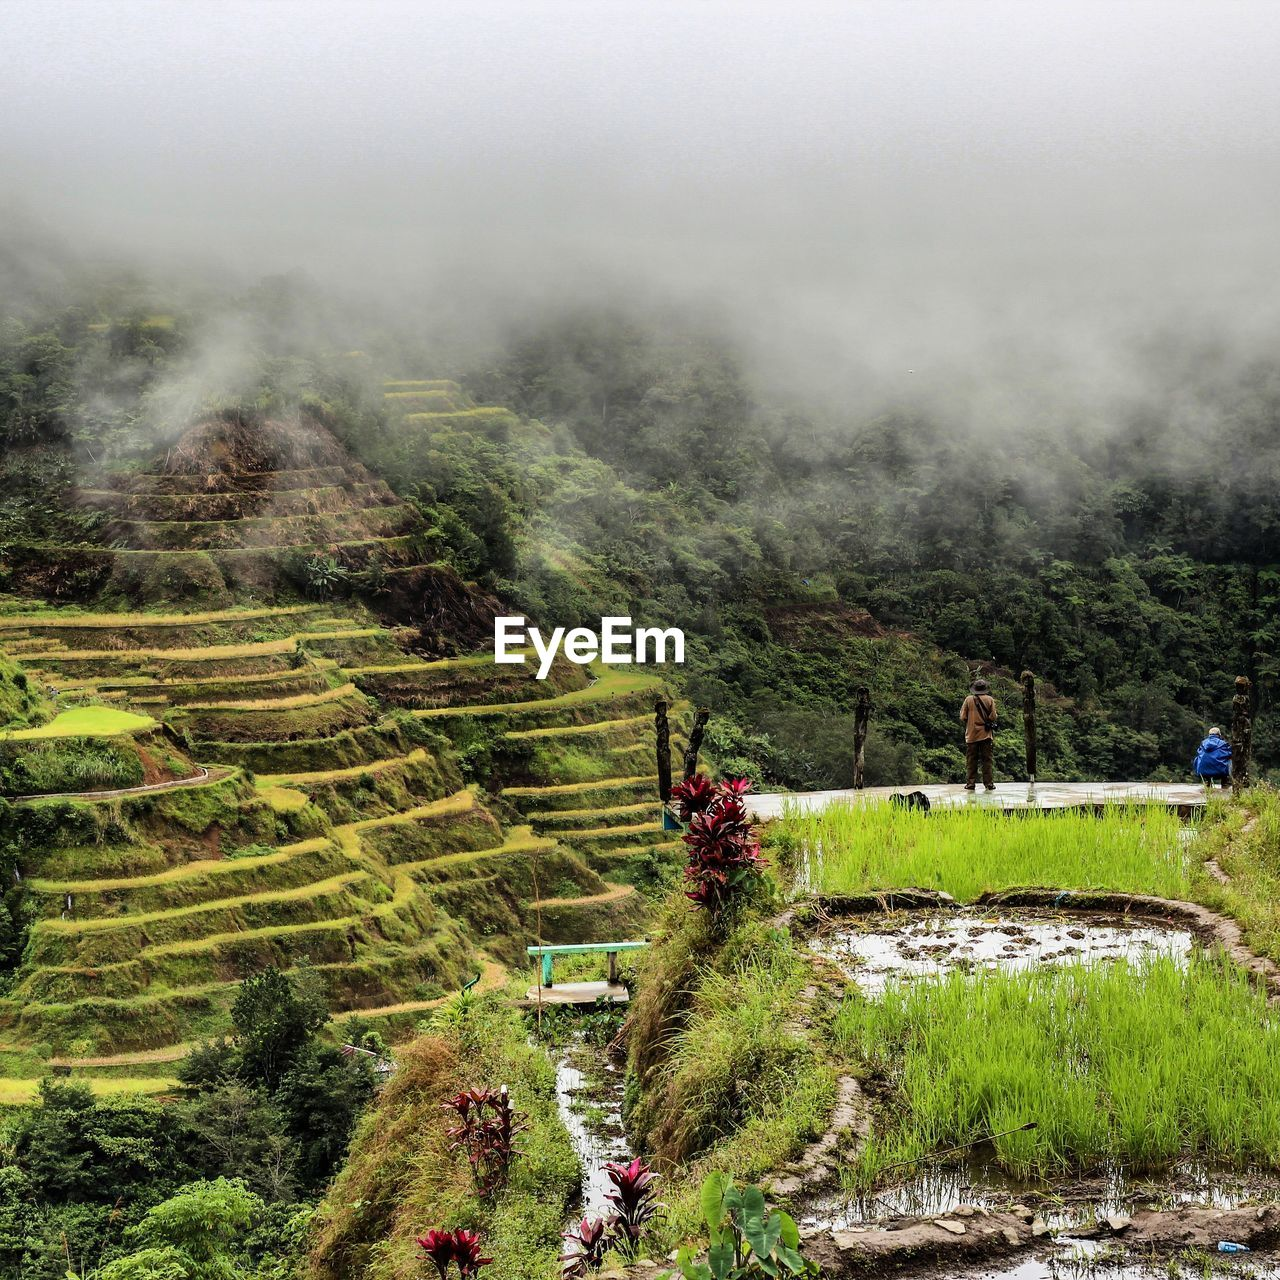 nature, growth, landscape, beauty in nature, field, agriculture, tranquility, tree, day, farm, scenics, tranquil scene, high angle view, outdoors, grass, terraced field, fog, rice paddy, rural scene, rice - cereal plant, mountain, real people, plant, men, water, sky, people